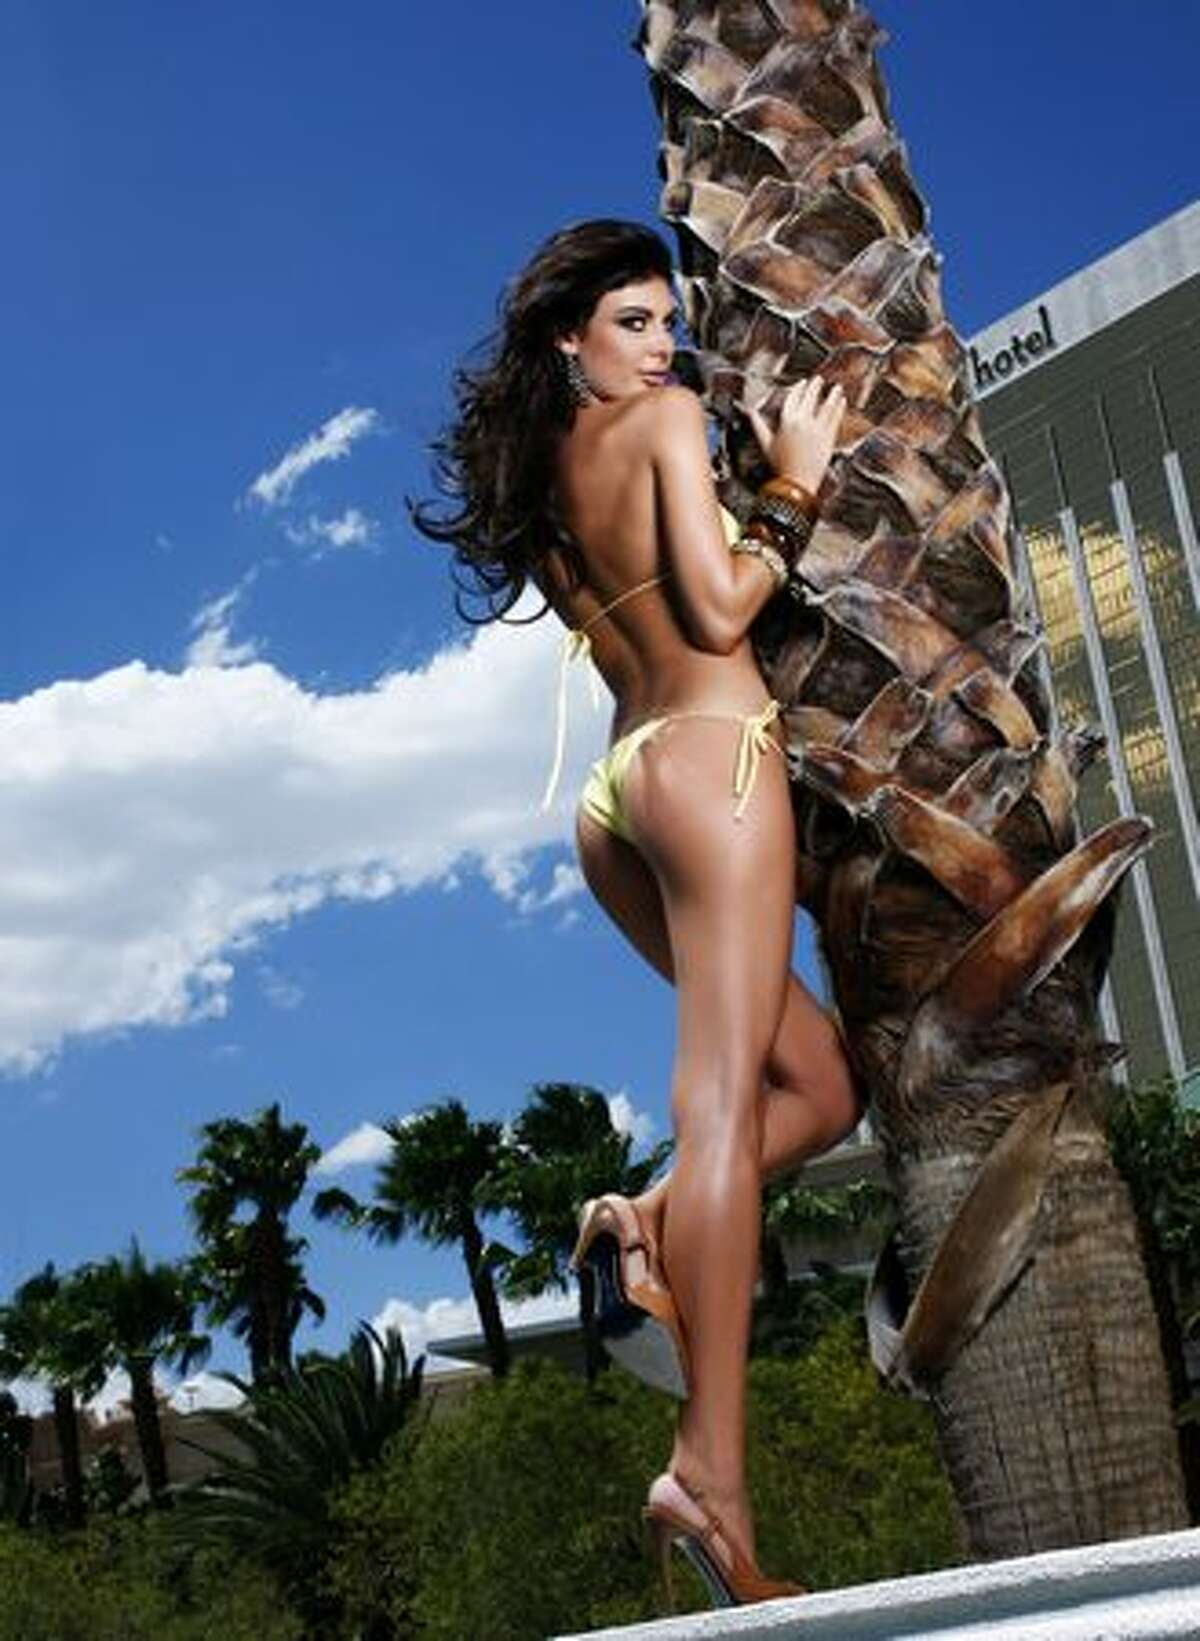 Angela Martini, Miss Albania 2010, poses for fashion photographer Fadil Berisha at Mandalay Bay Resort and Casino in Las Vegas. She and the rest of the 83 contestants will compete for the coveted Diamond Nexus Labs Crown to be worn by the new Miss Universe on Monday night.